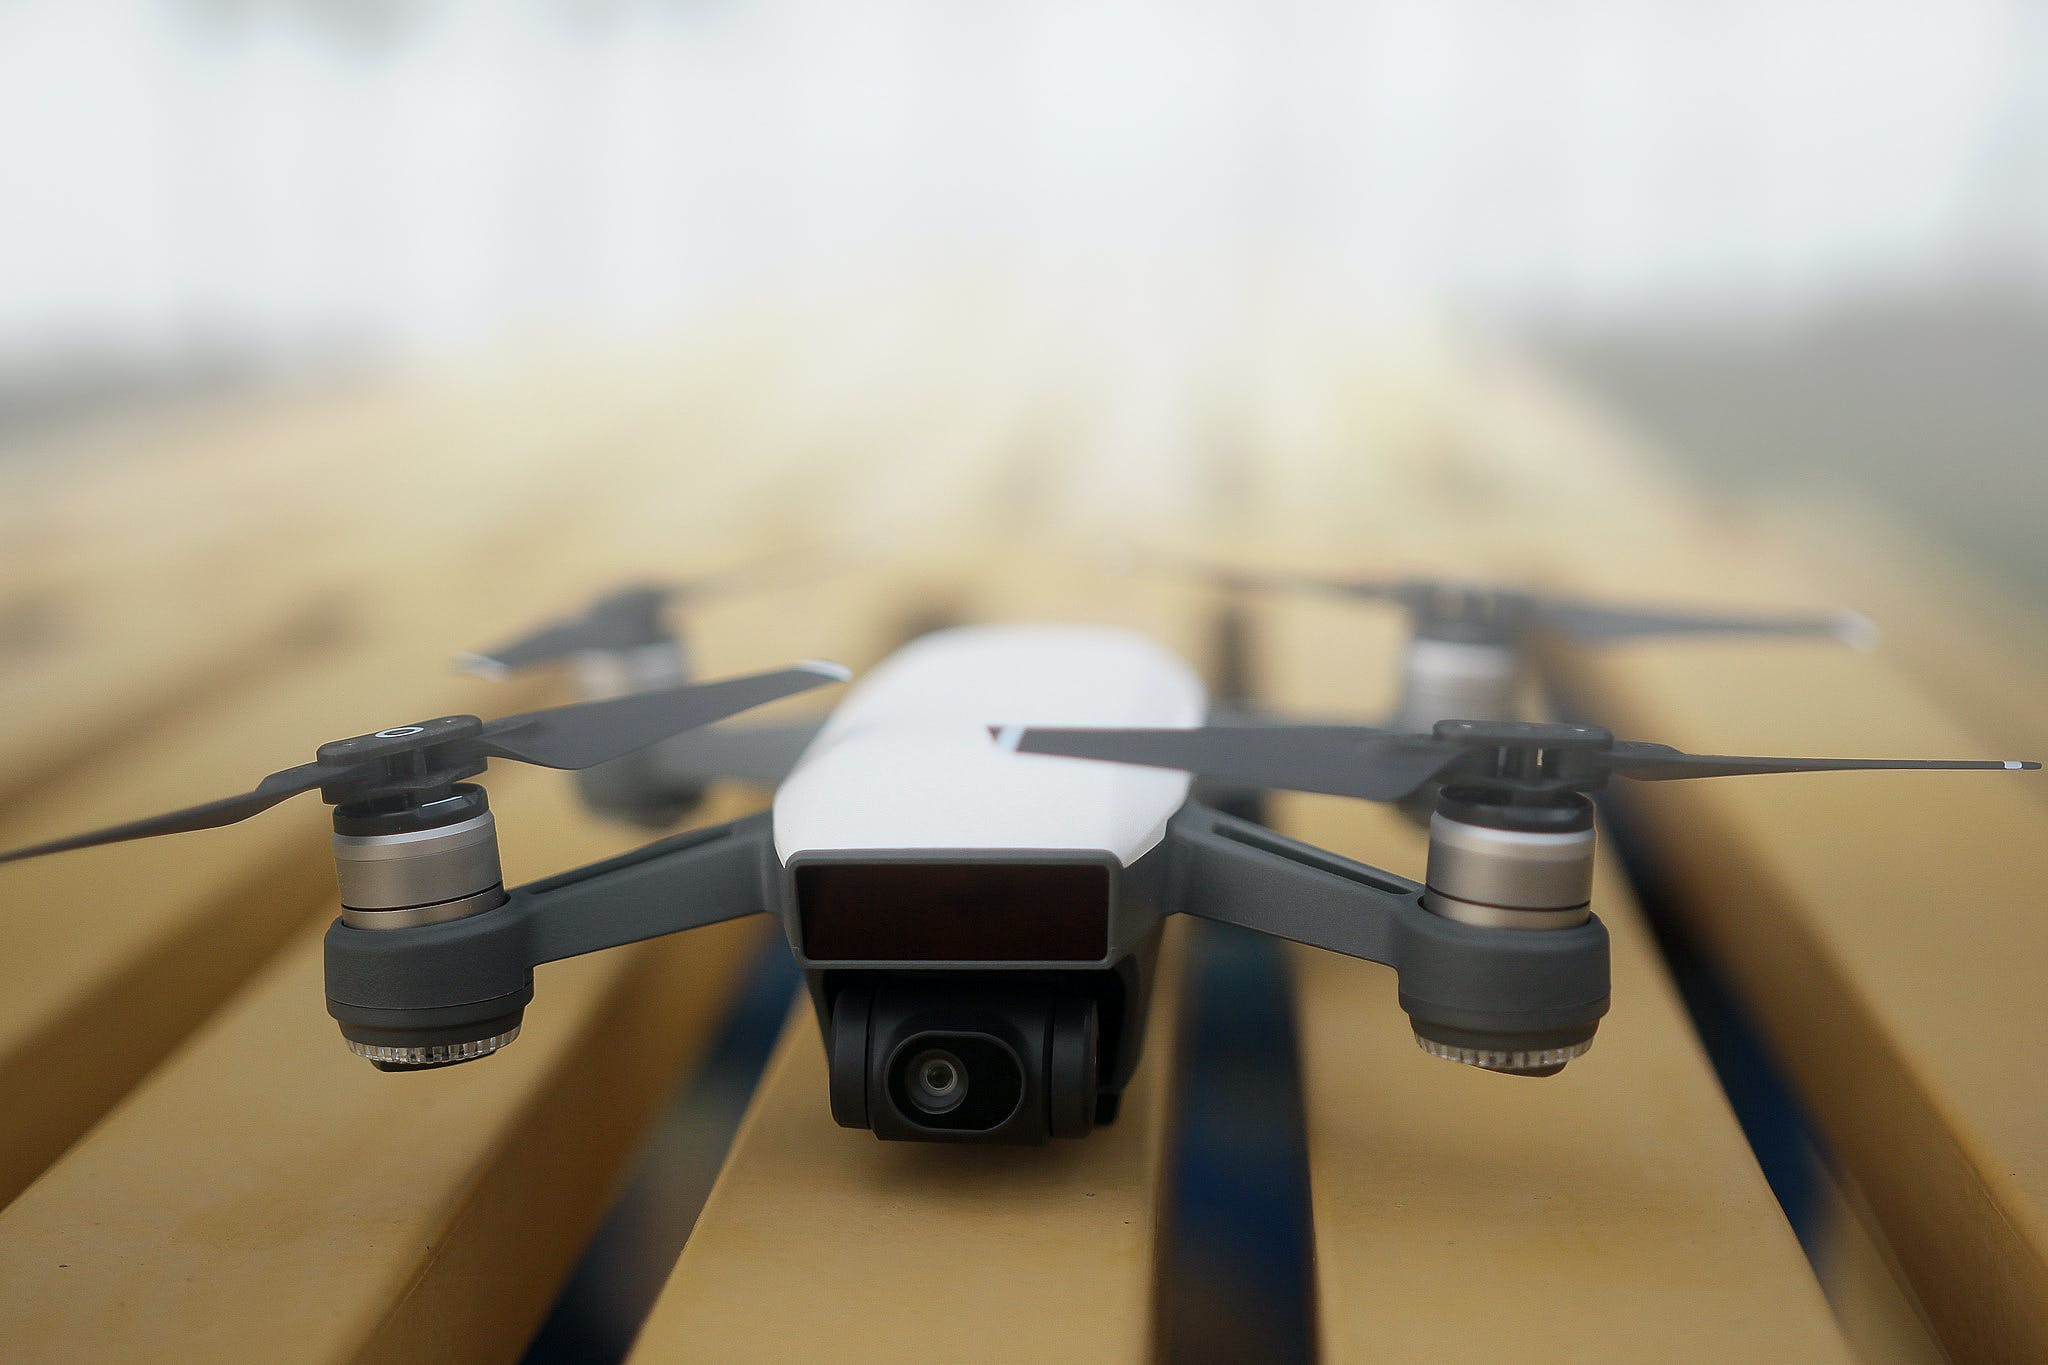 Shallow Focus Photography of White and Gray Quadcopter